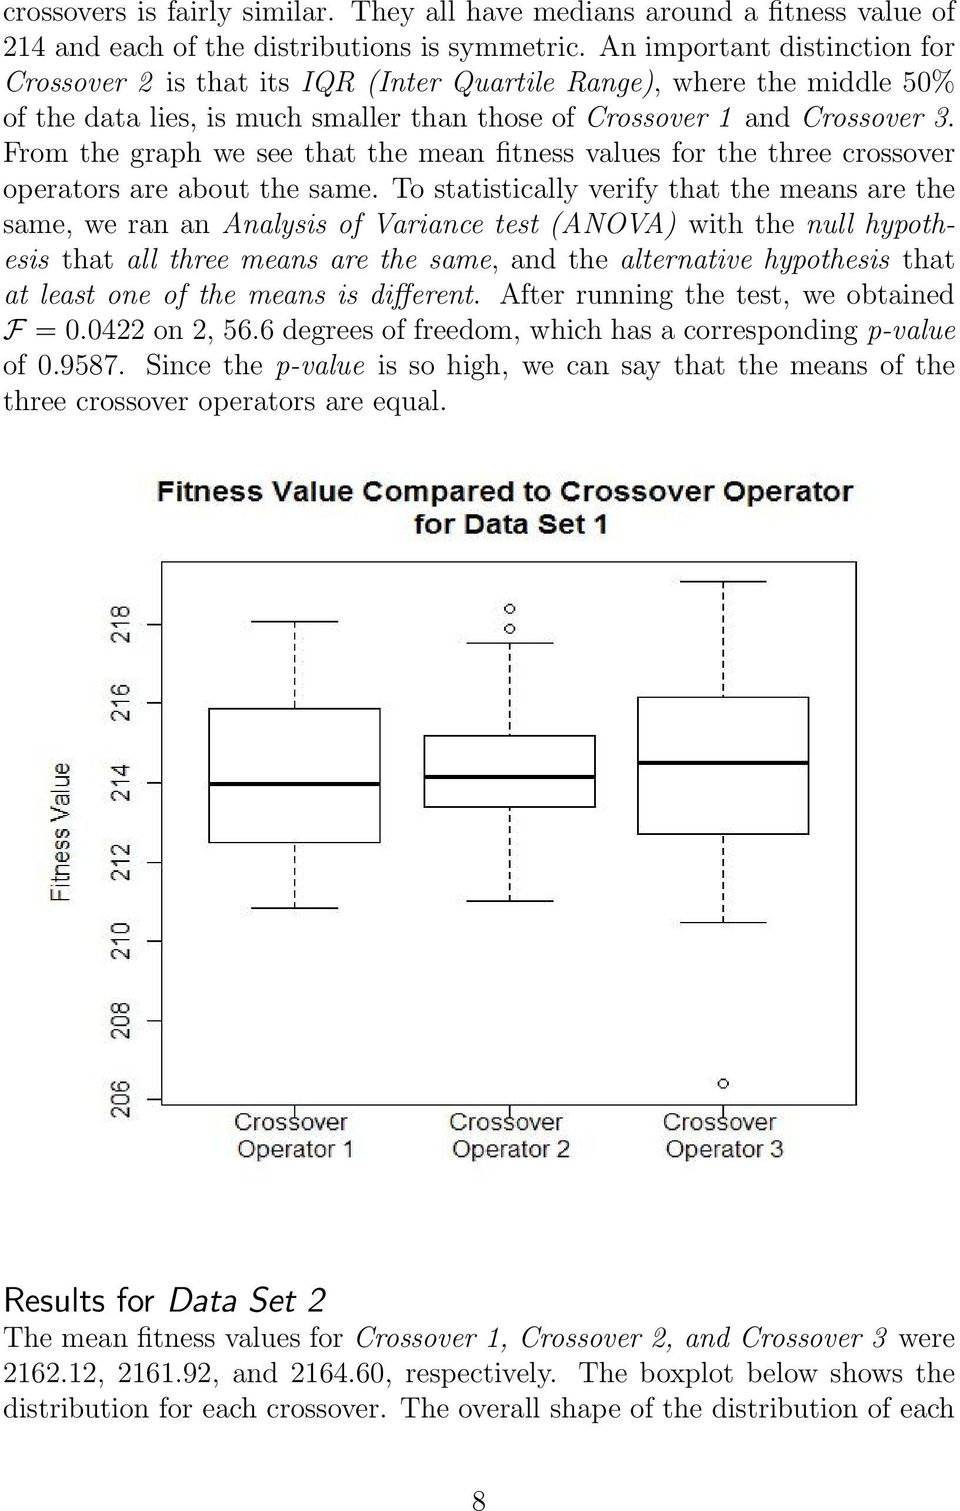 From the graph we see that the mean fitness values for the three crossover operators are about the same.